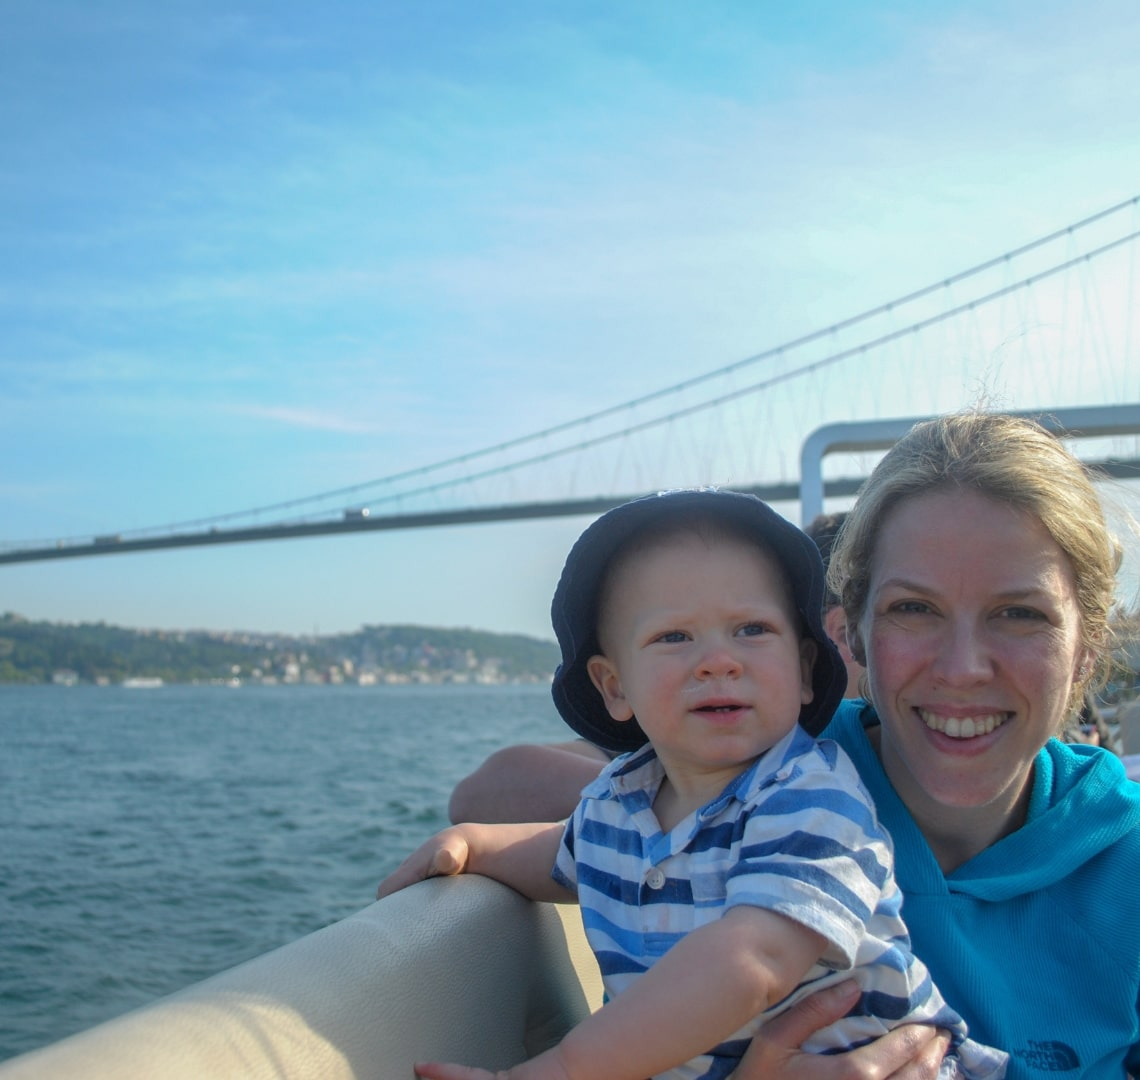 Best family holiday destinations - me and Thing 1 as a toddler on a boat in the middle of the Bosphorus